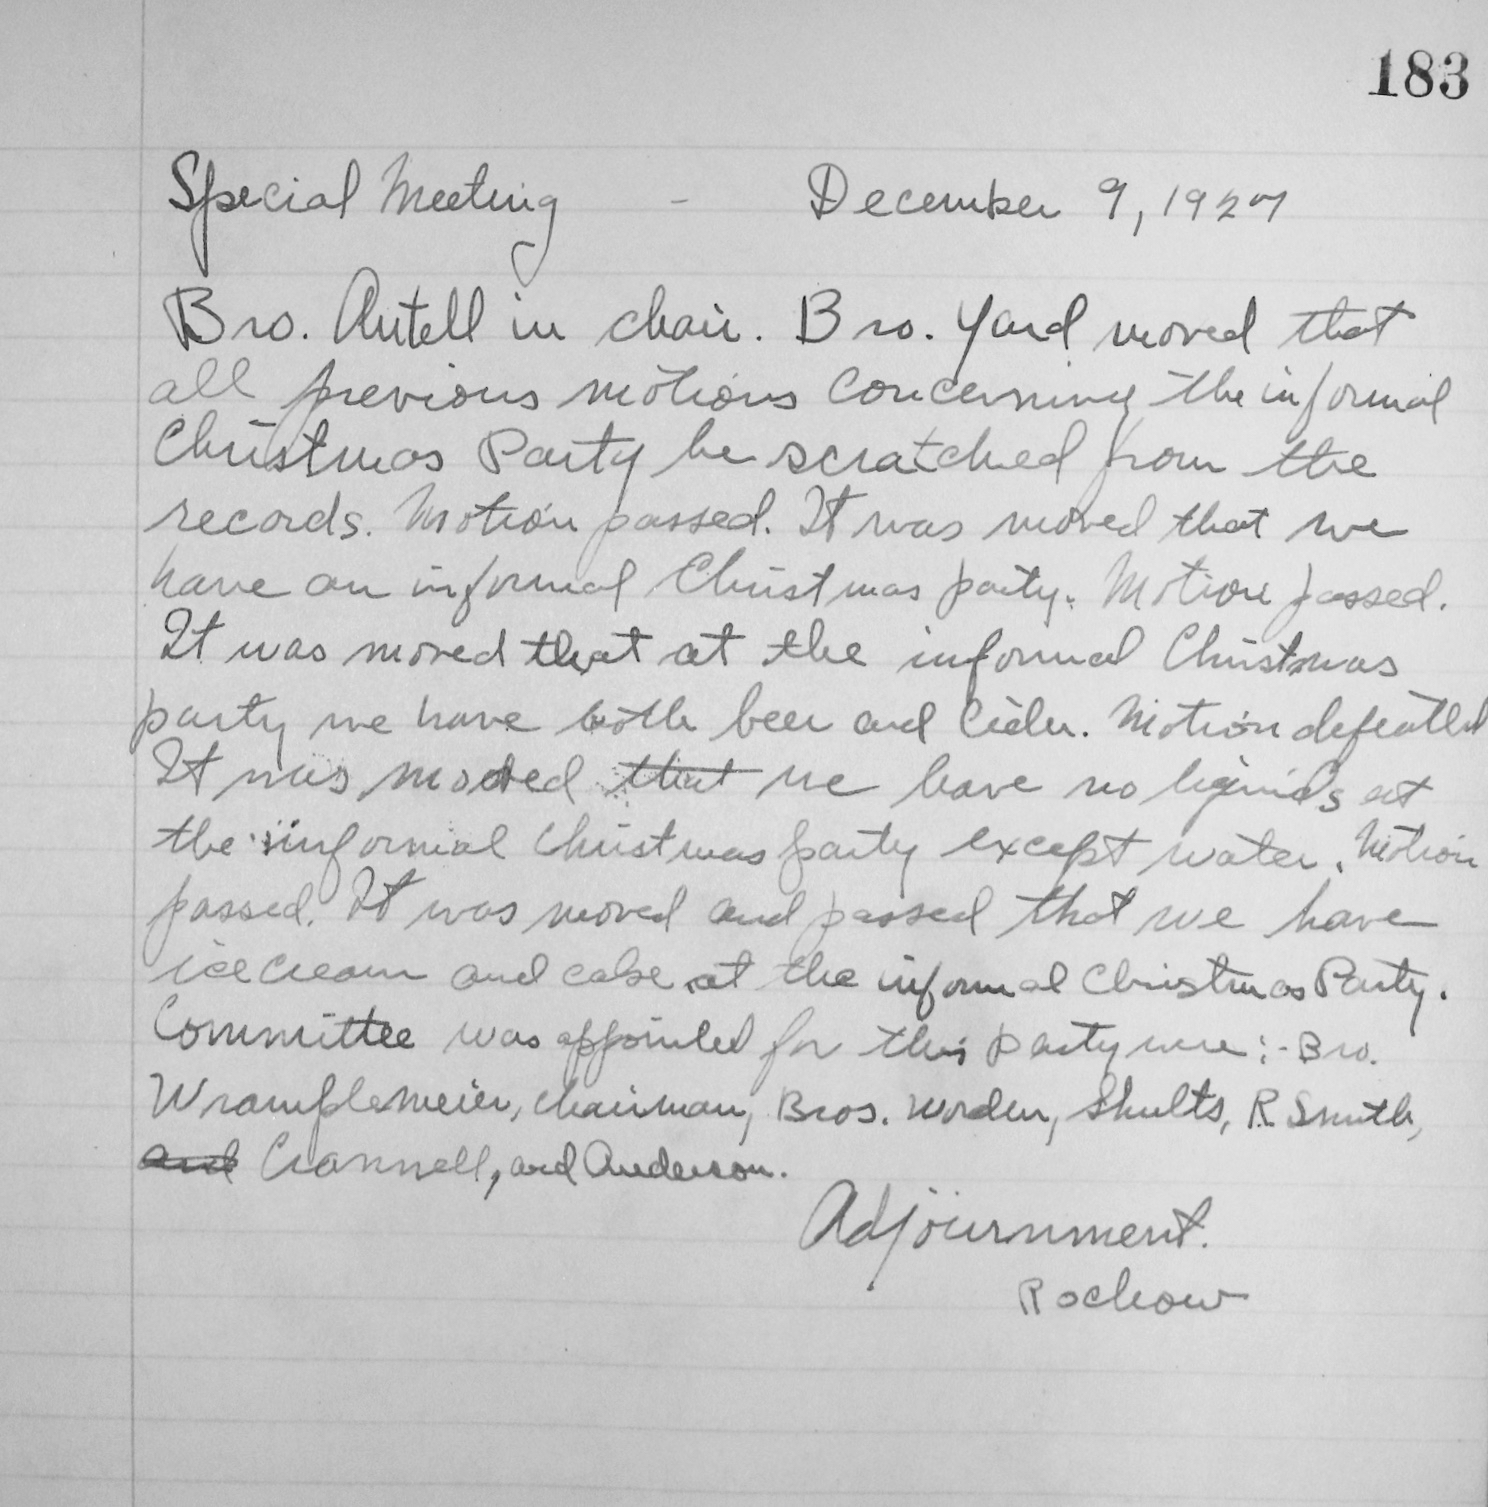 Minutes of Chapter Meeting, Dec. 9, 1927